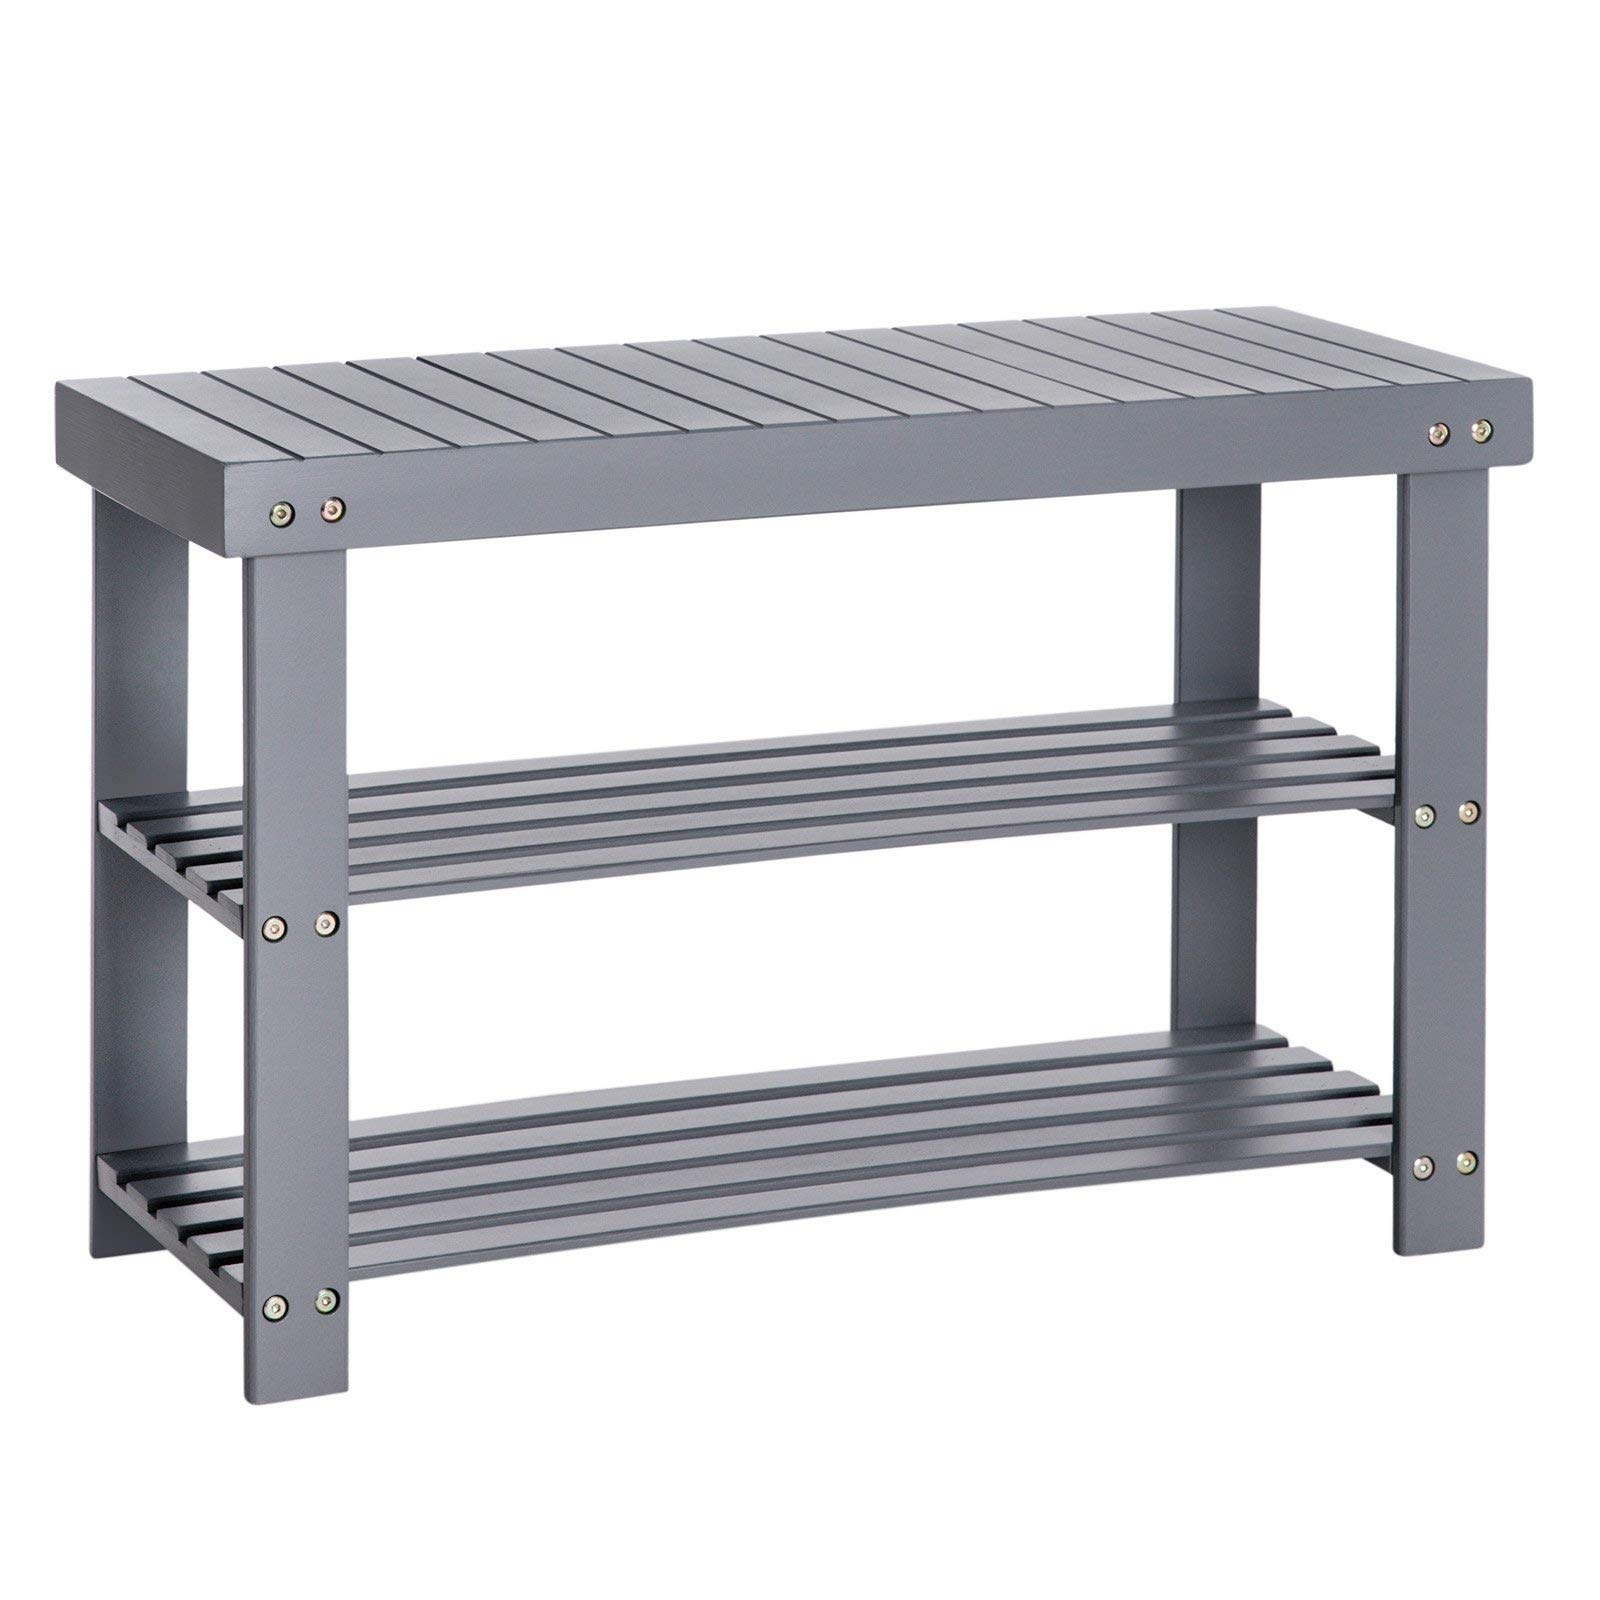 SONGMICS Bamboo 3-Tier Shoe Rack Bench, Shoe Organizer, Storage Shelf, Holds Up to 264 Lb, Ideal for Entryway Hallway Bathroom Living Room and Corridor Gray ULBS04GY by SONGMICS